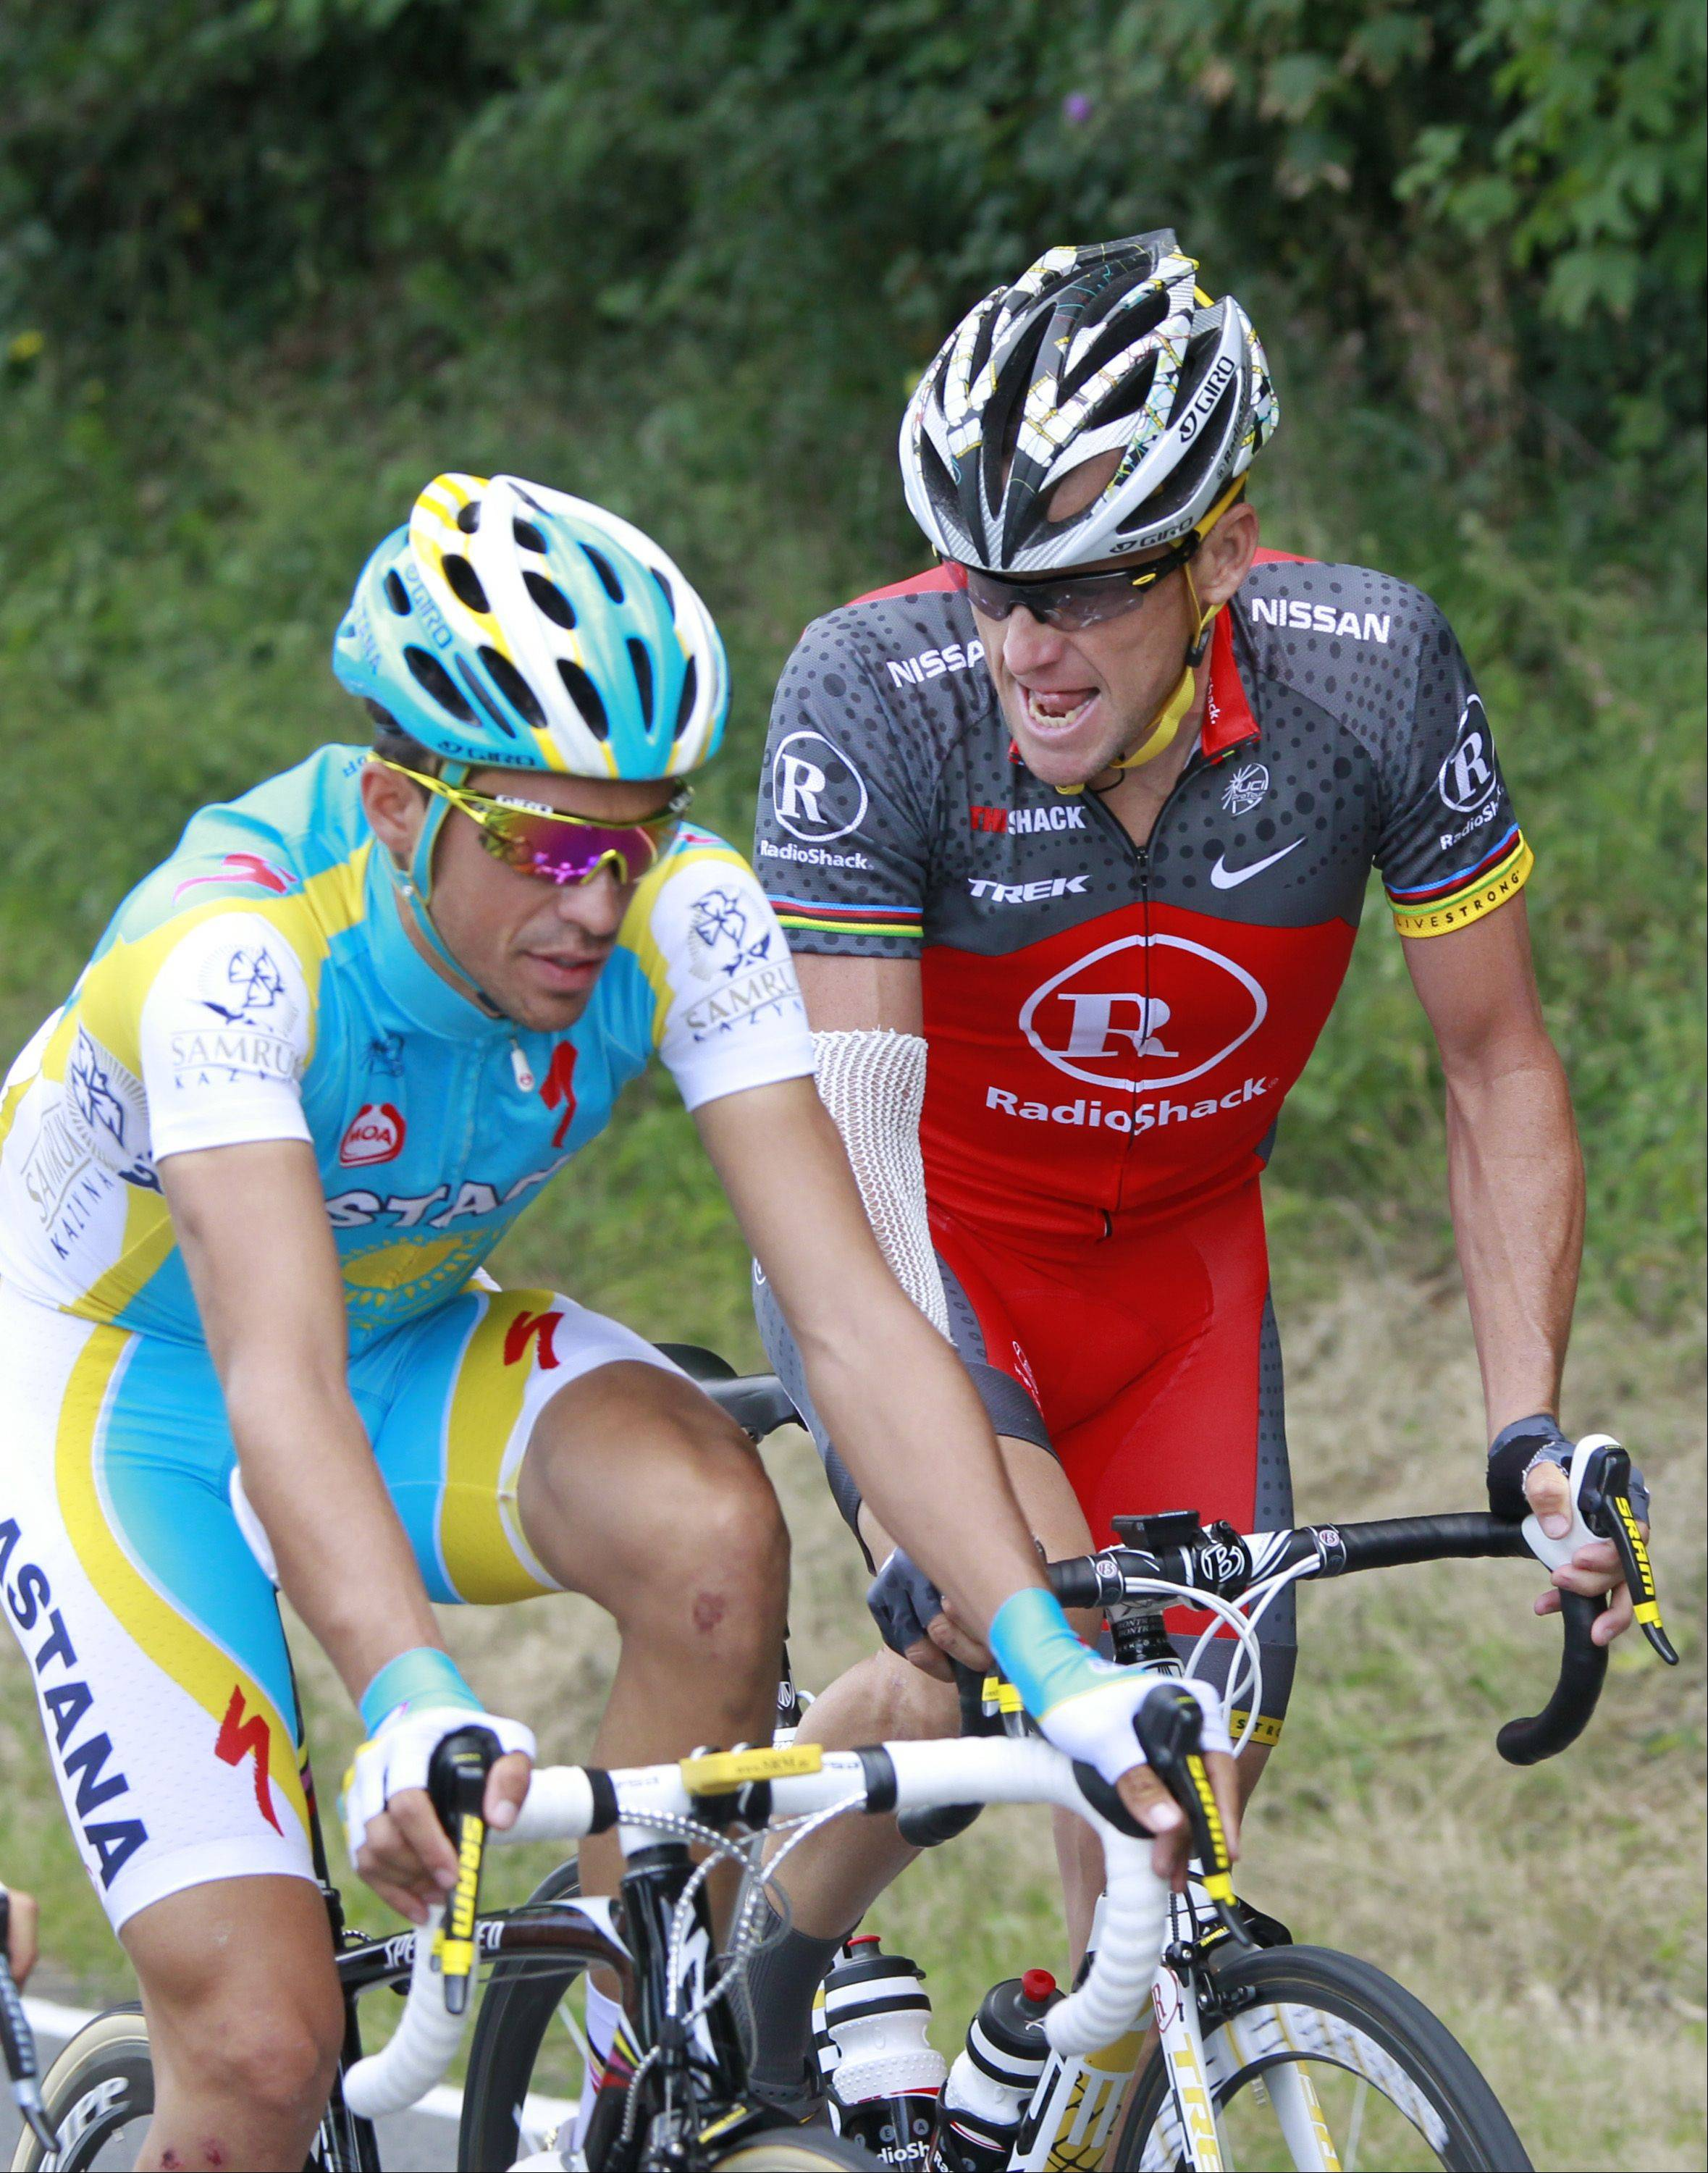 Seven-time Tour de France winner Lance Armstrong of the US, right, looks at his opponent and 2009 Tour de France winner Alberto Contador of Spain, as they ride in the pack during the third stage of the Tour de France cycling race over 213 kilometers (132.4 miles) with start in Wanze, Belgium and finish in Arenberg, France, Tuesday July 6, 2010.